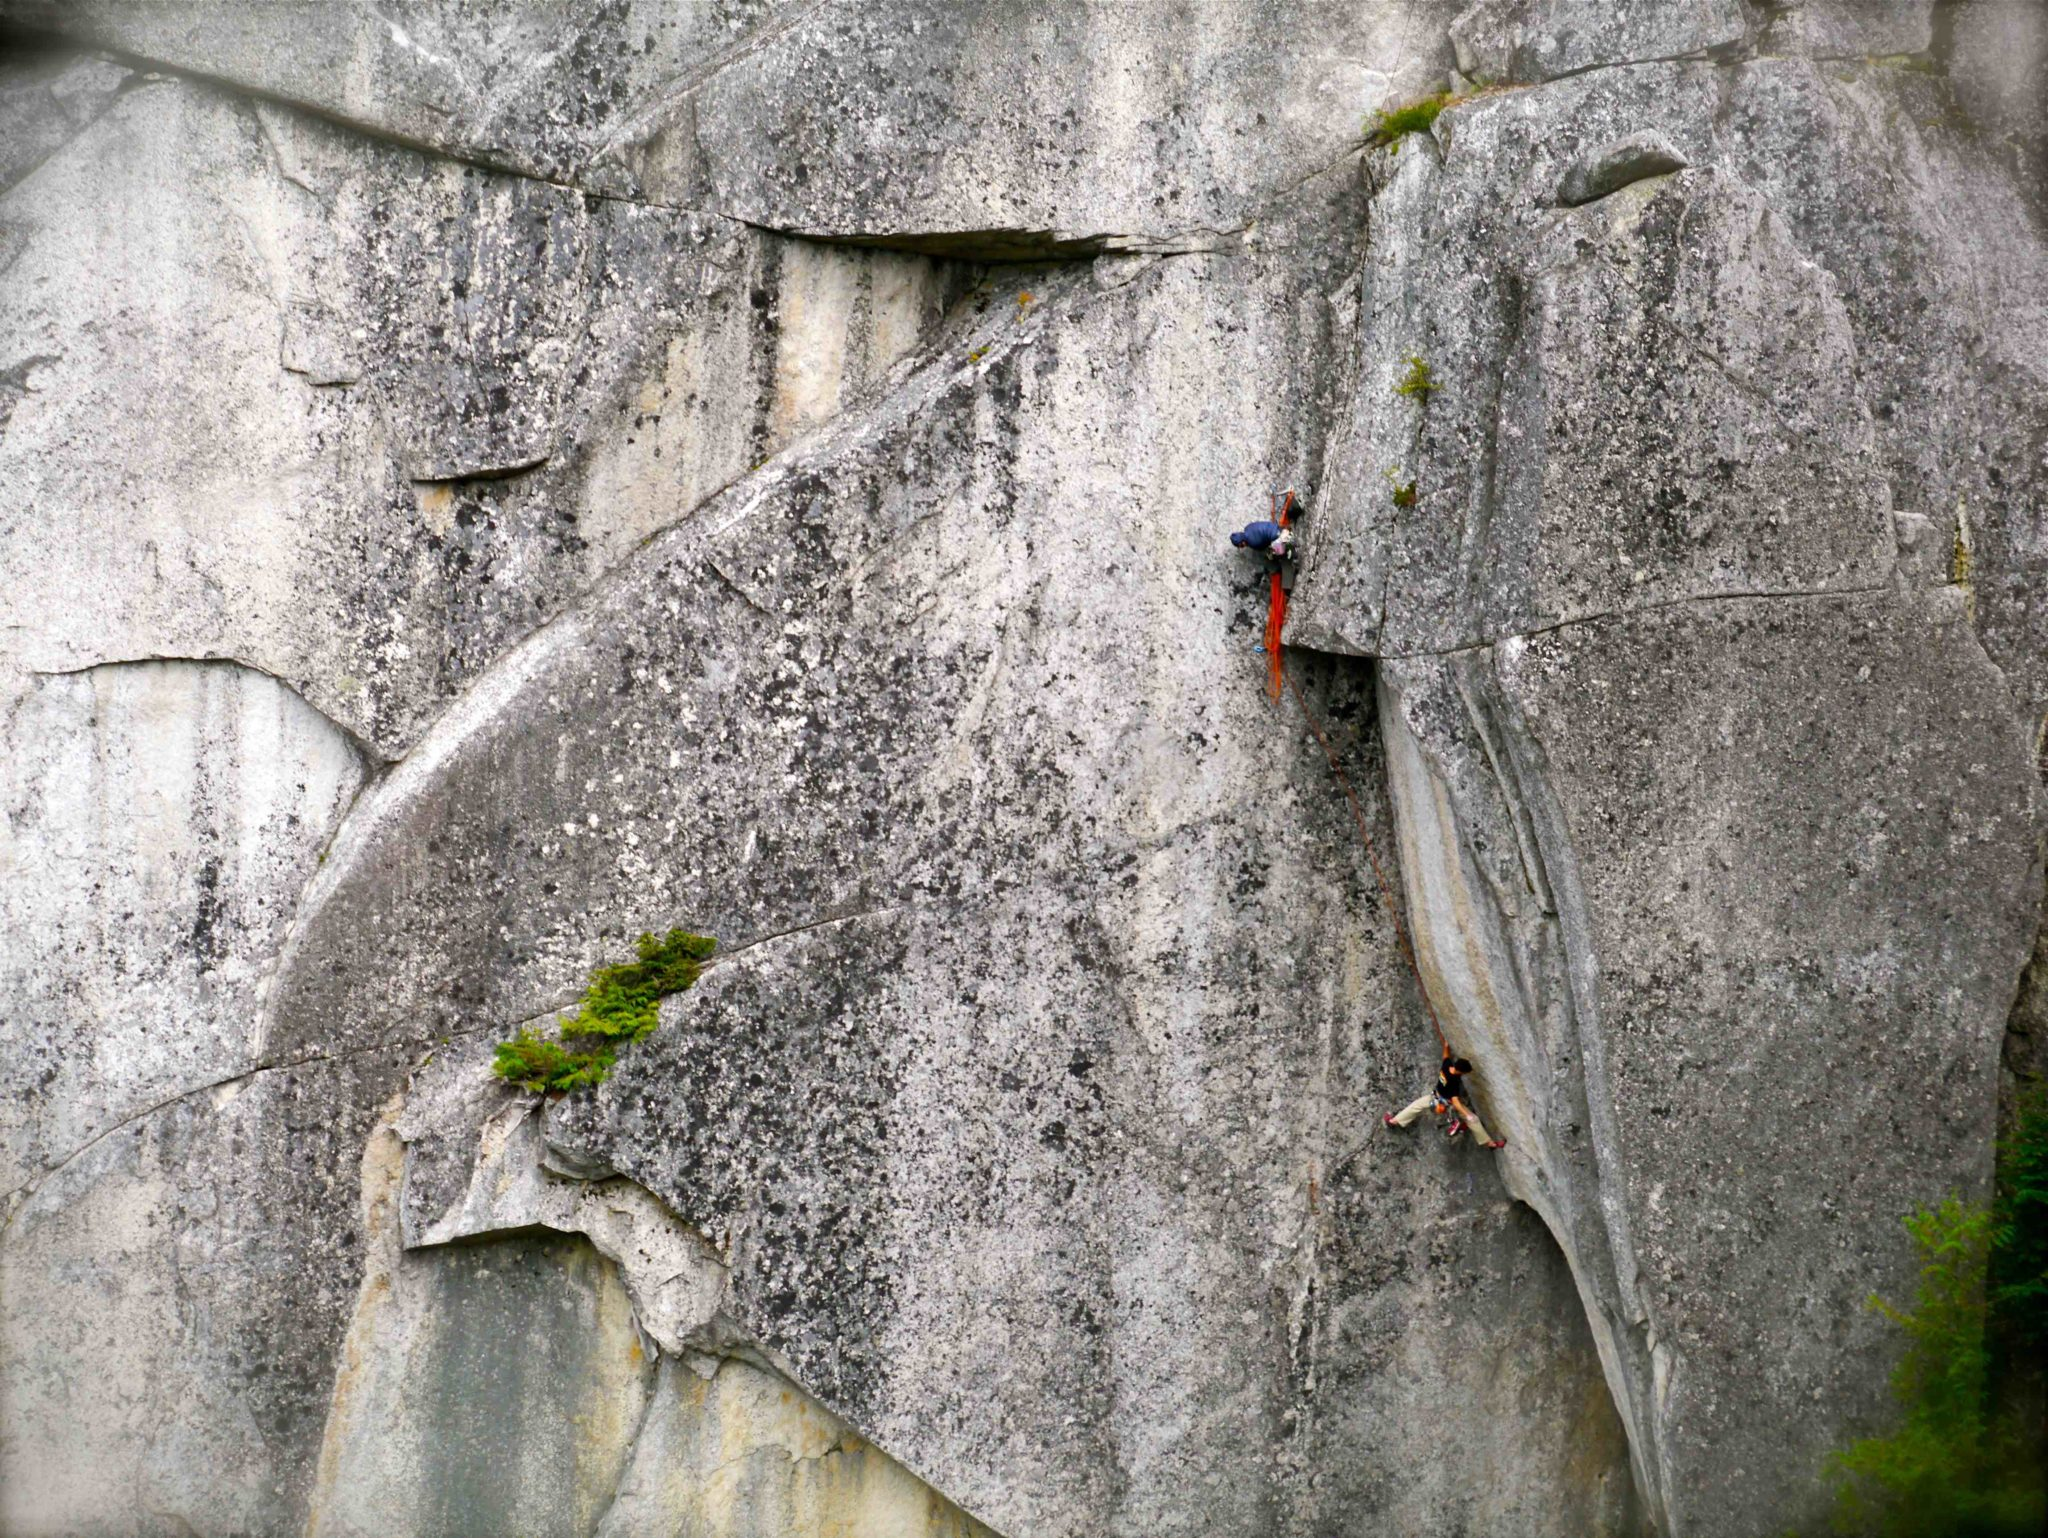 The Prow Wall Squamish BC Rock Climbing